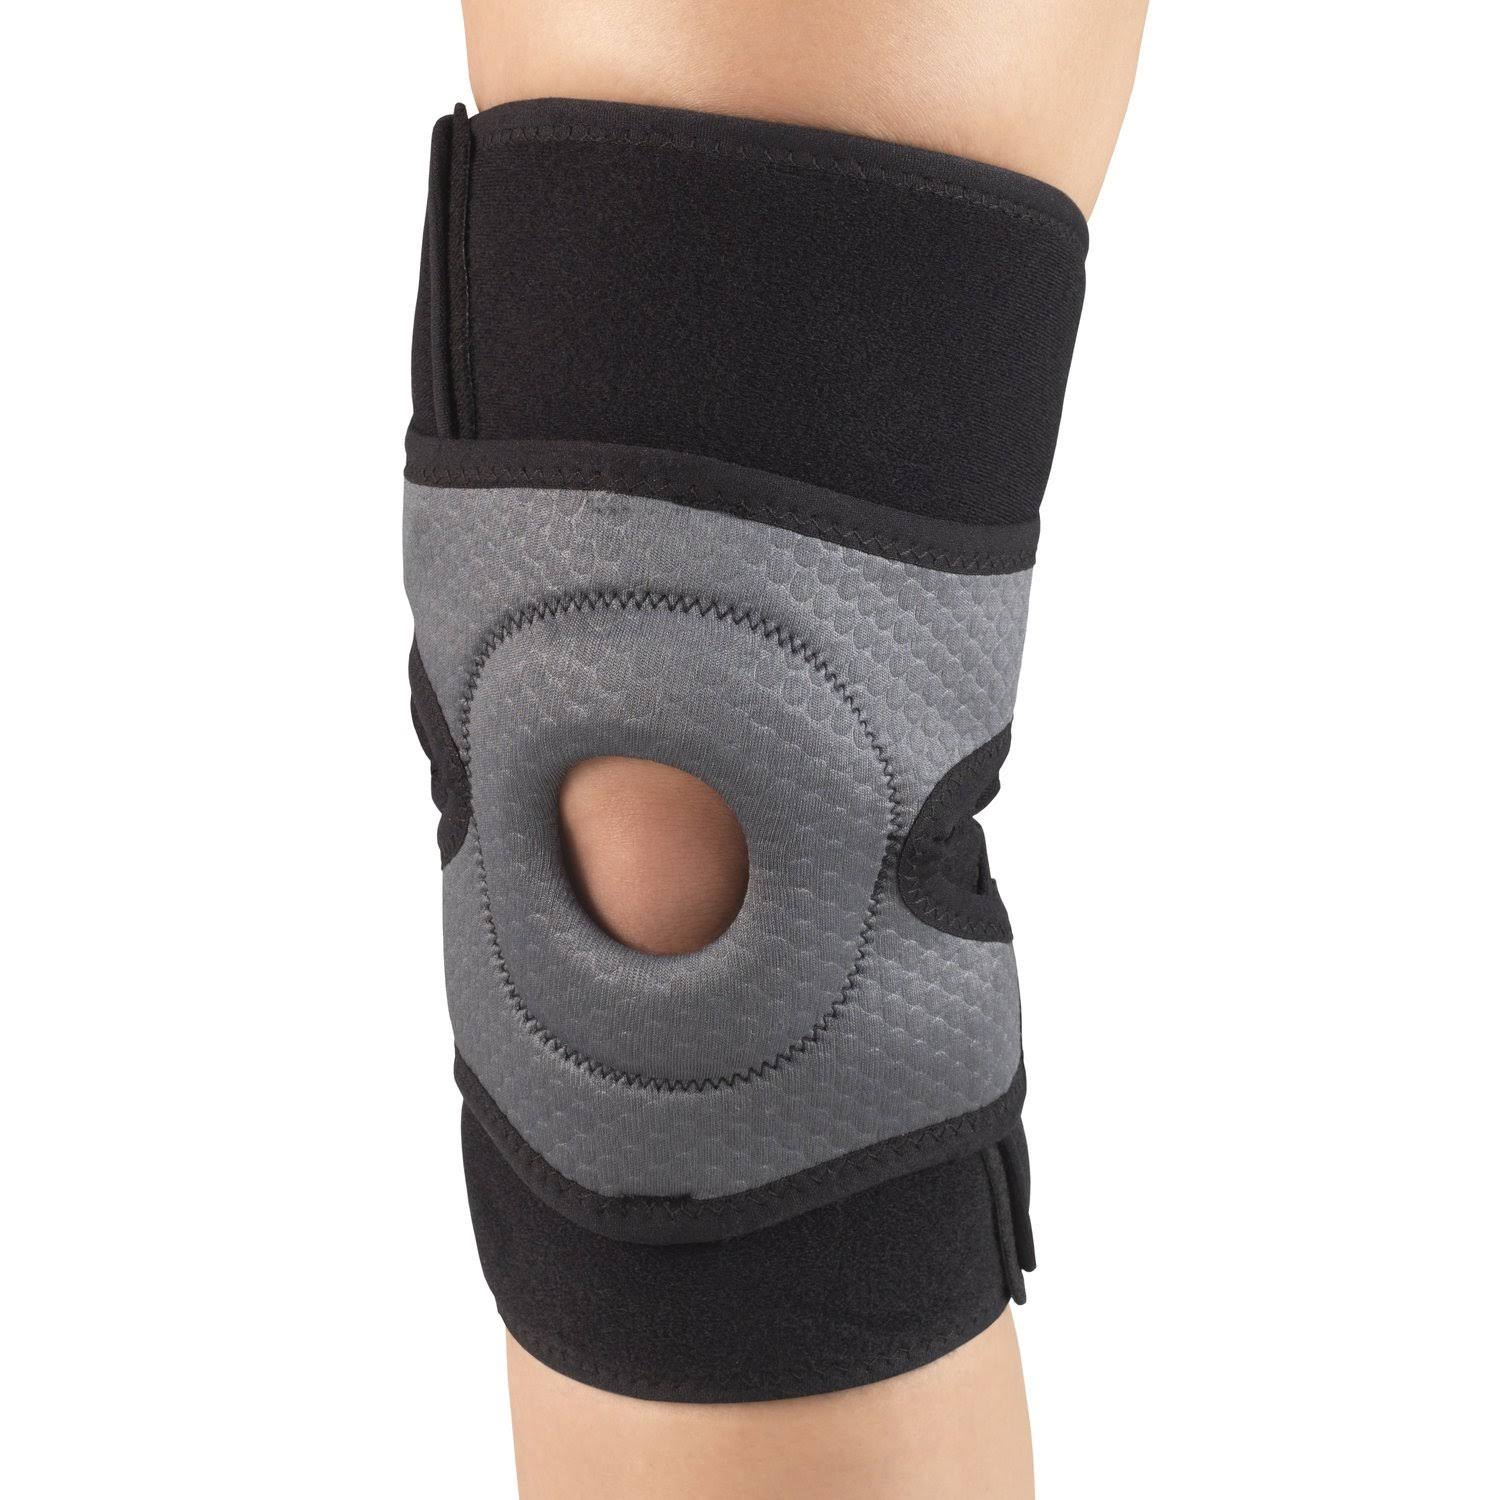 Champion Multilayer Knee Wrap With Stabilizer Pad - Black, Large